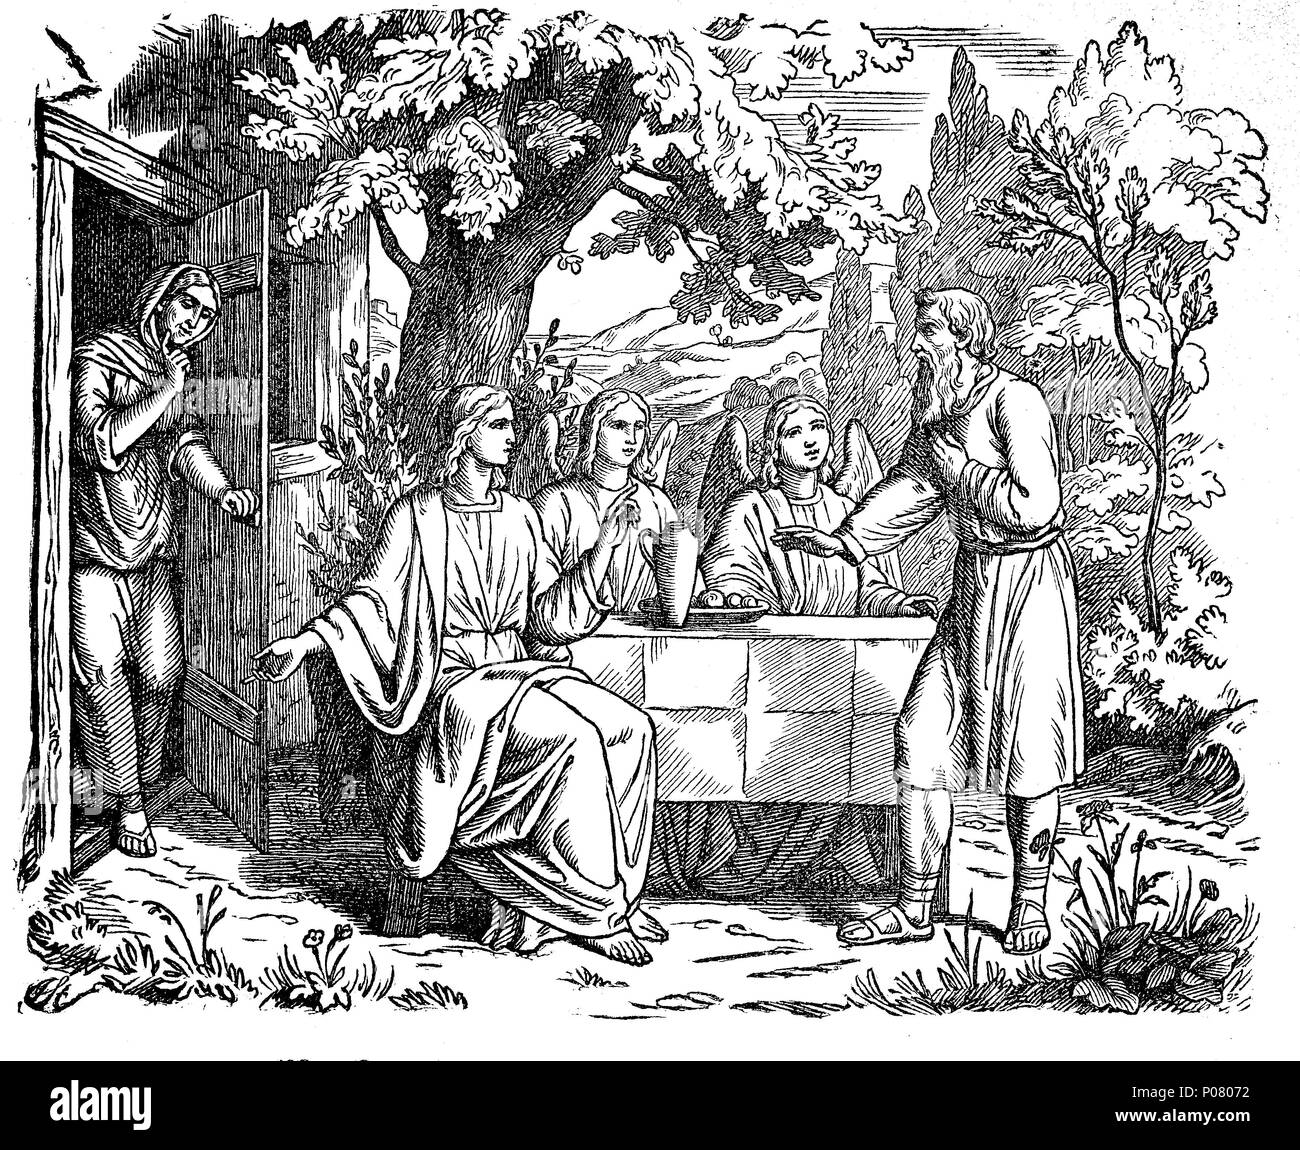 Abraham's hospitality and intercession, Abrahams Gastfreundschaft und Fürbitte, digital improved reproduction of an original print from the year 1881 - Stock Image